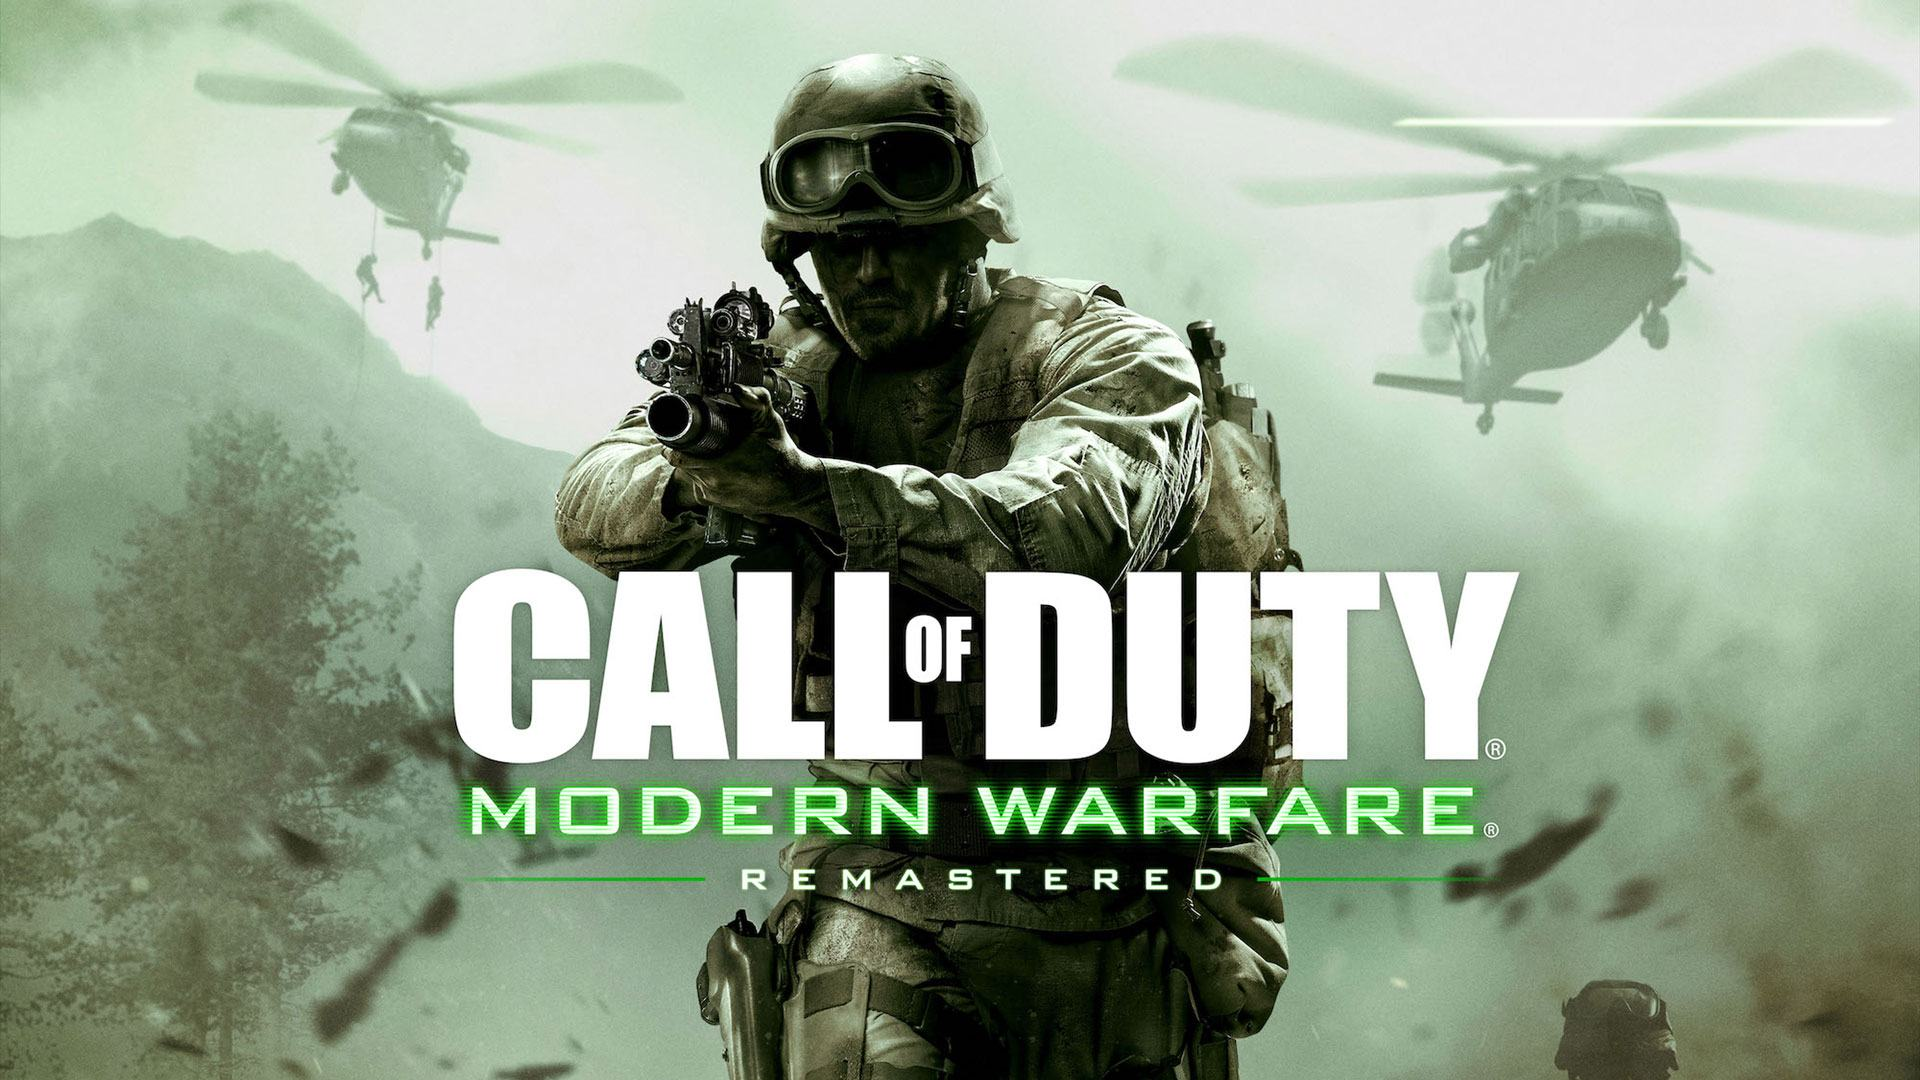 Call of Duty Modern Warfare Remastered - All Weapon